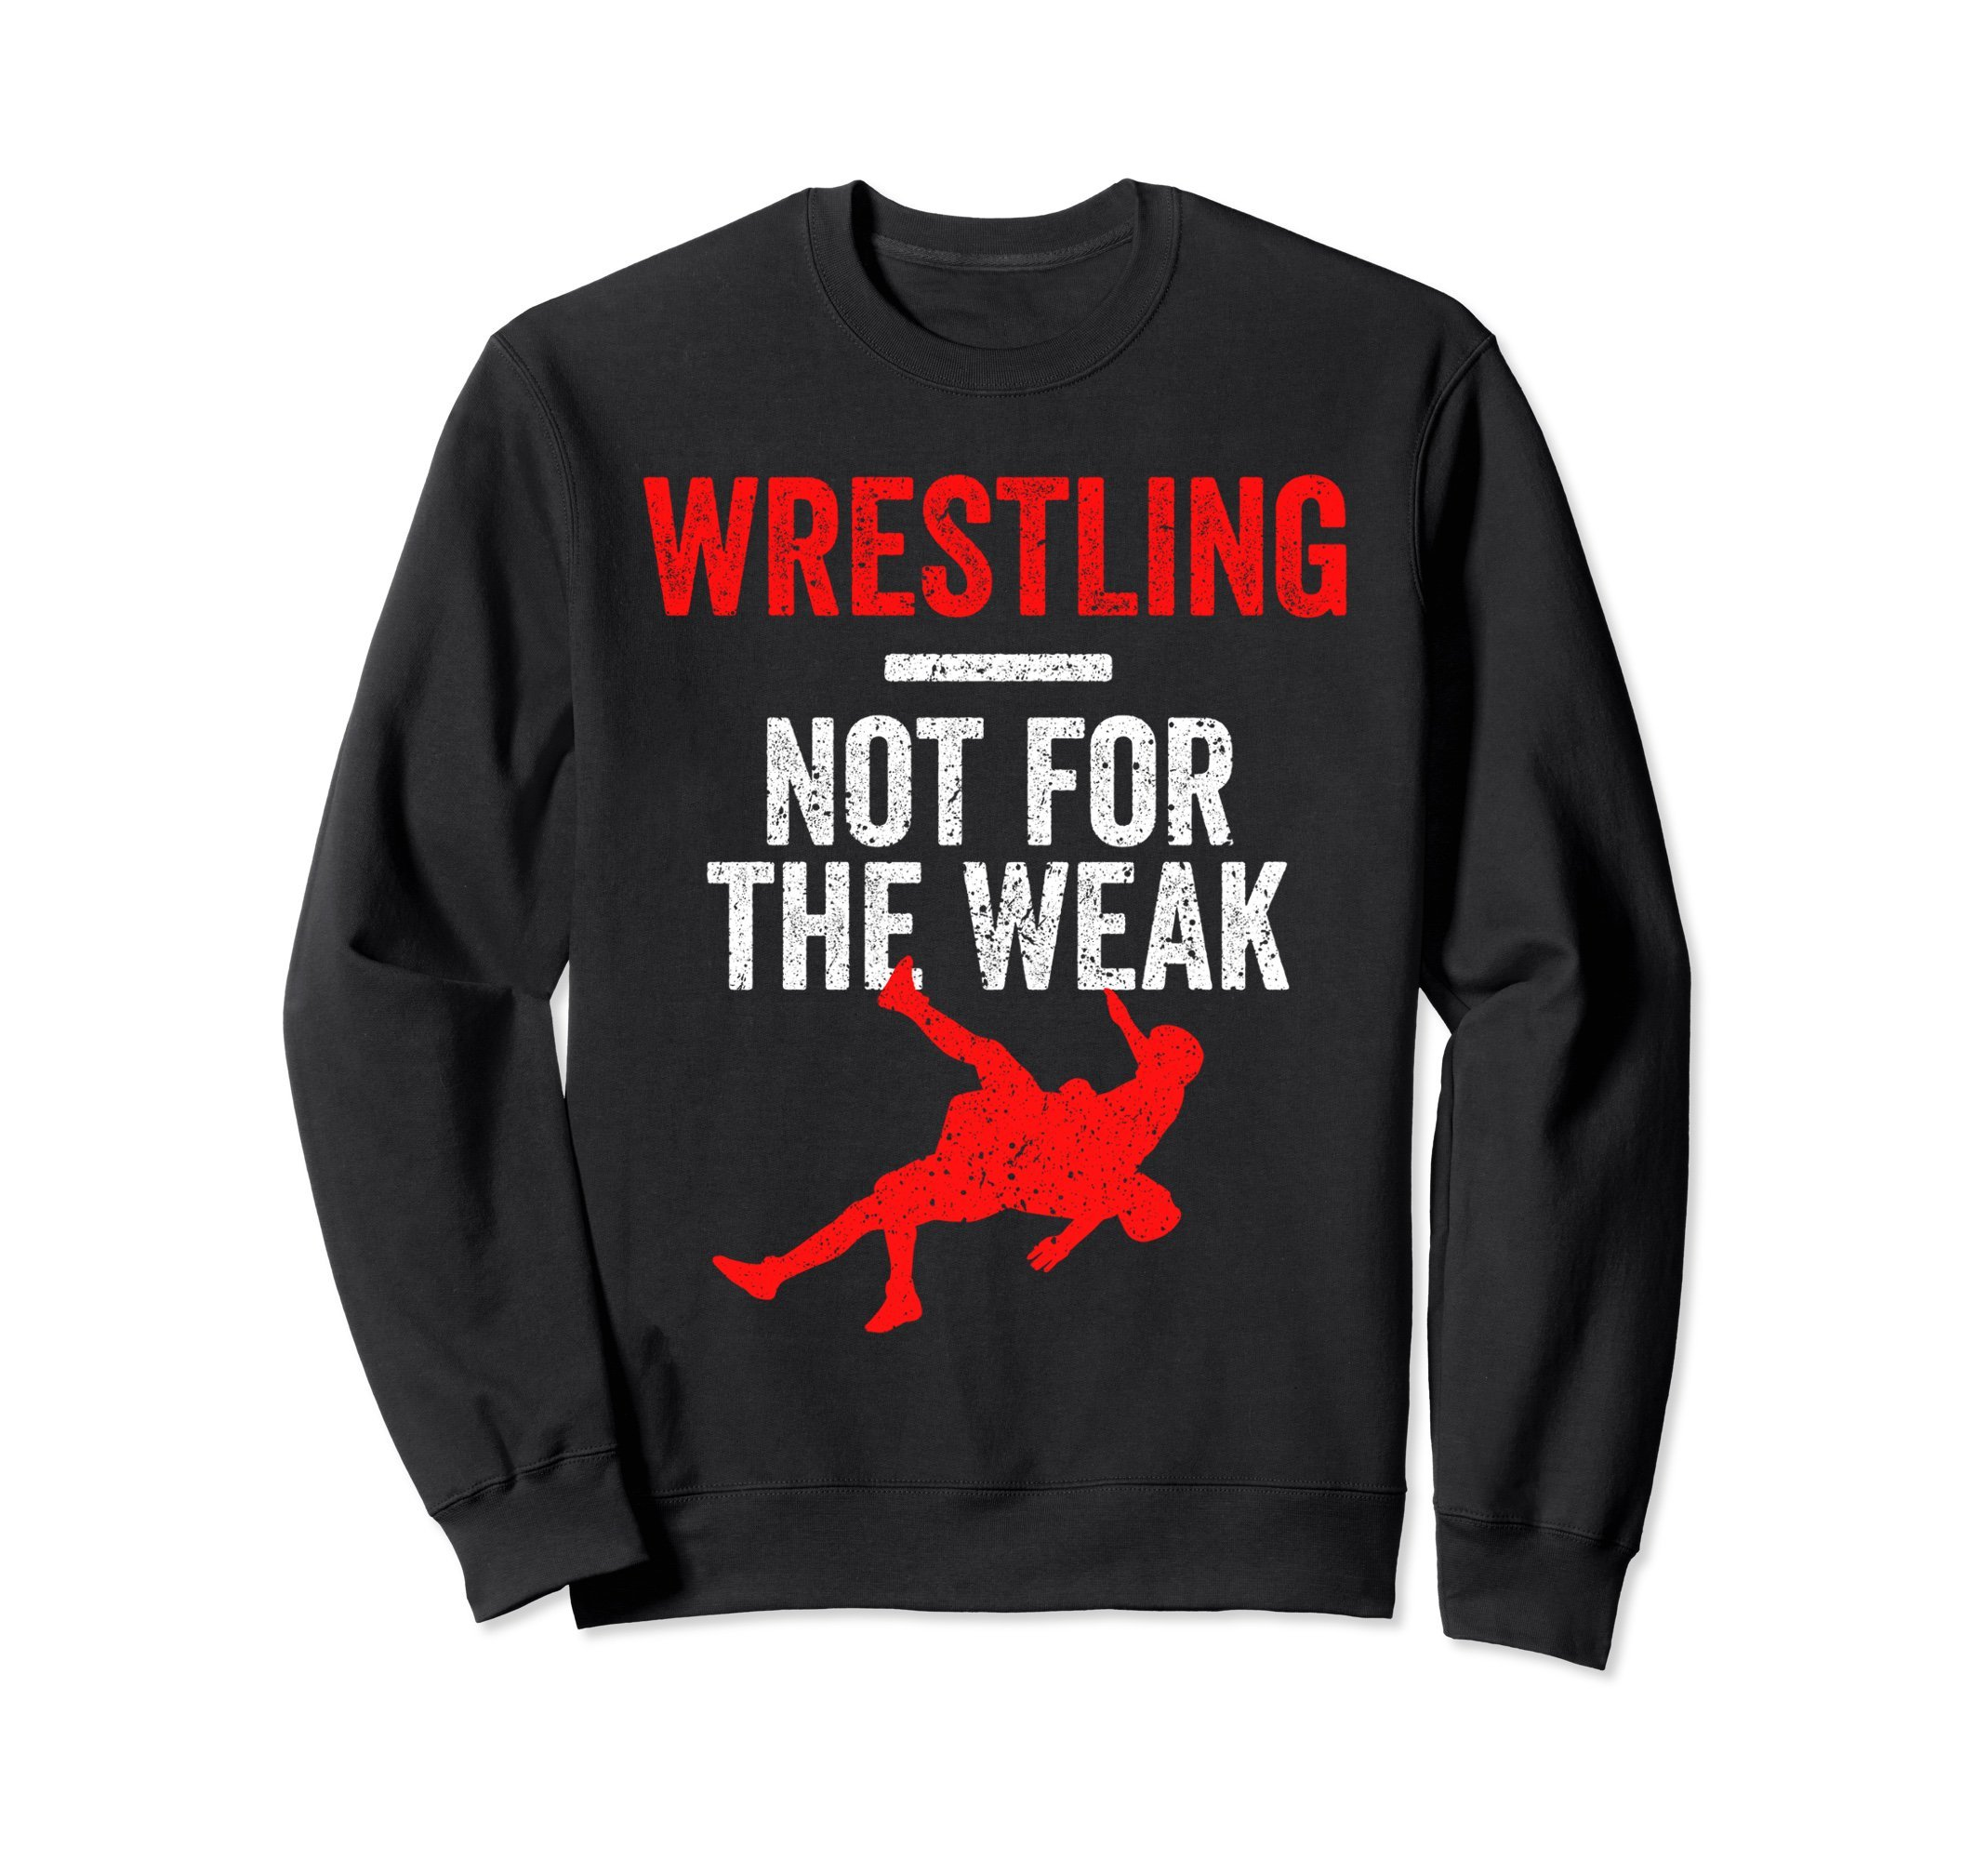 Unisex Not For The Weak Wrestling Sweatshirt for Wrestlers, Red Medium Black by Wrestling Shirts and Wrestling Shoes